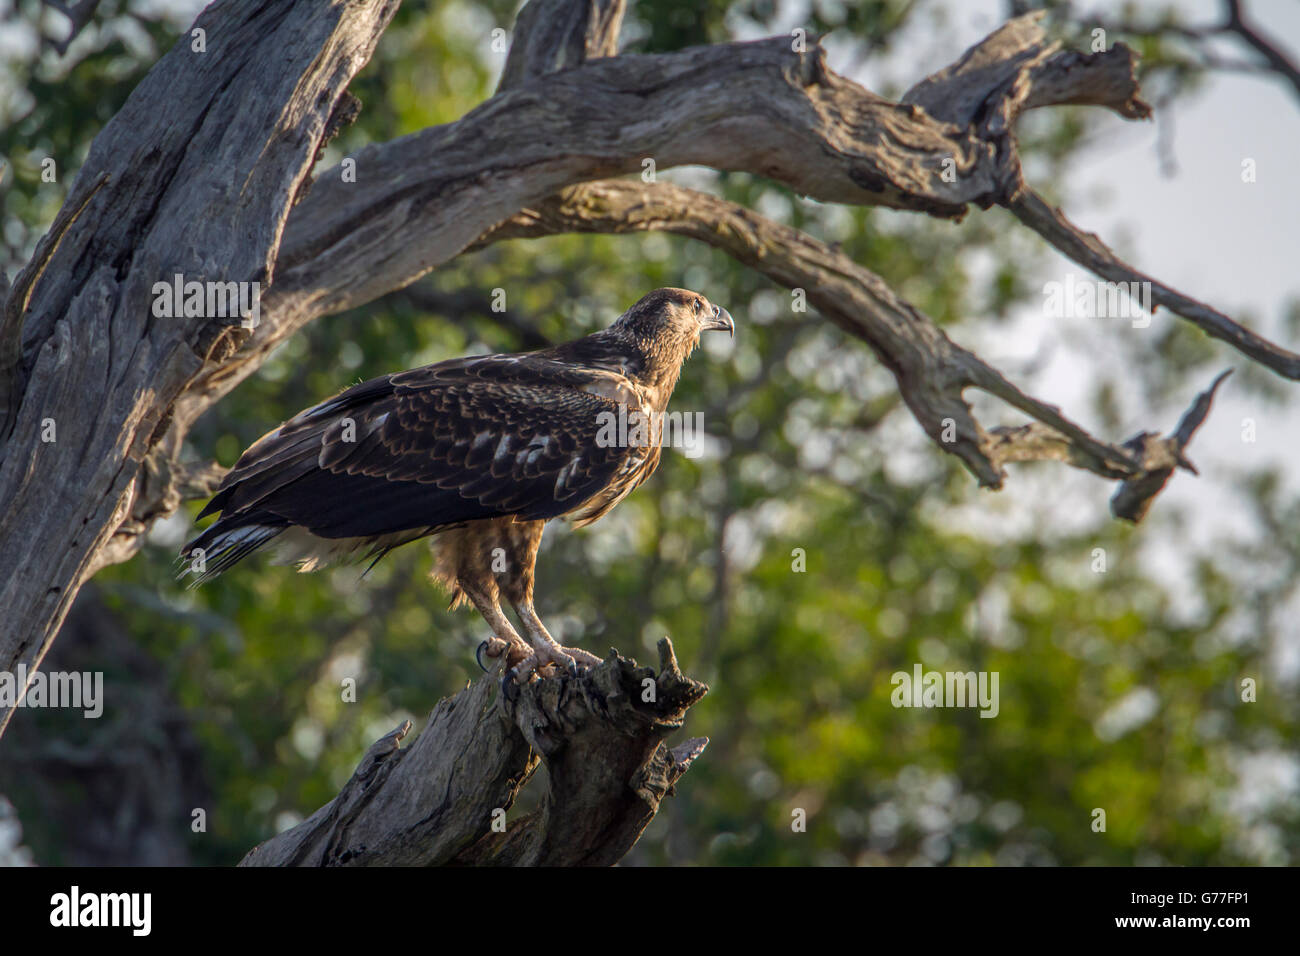 Martial eagle in Kruger national park, South Africa ; Specie Polemaetus bellicosus family of Accipitridae - Stock Image